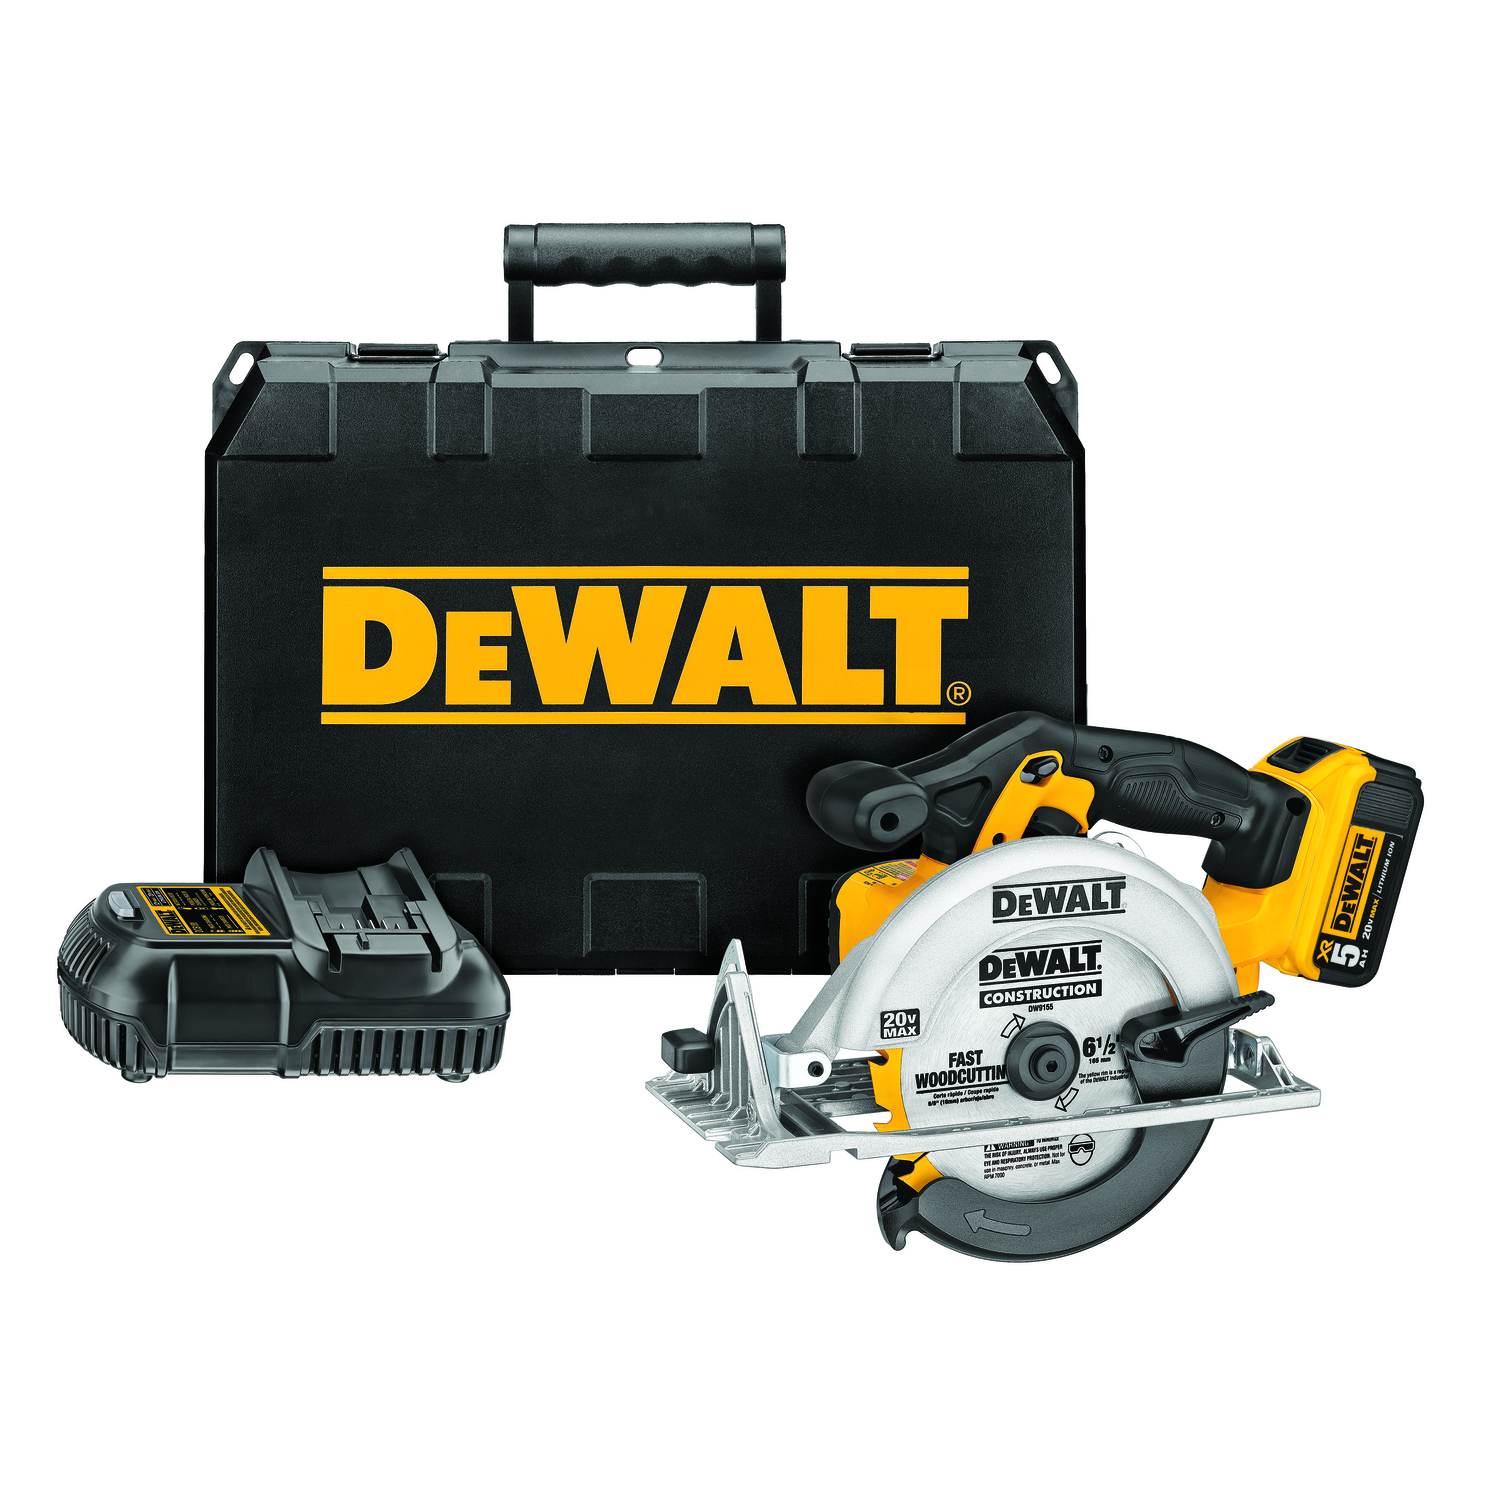 DeWalt  Cordless  20 max volts Circular Saw  5150 rpm 6-1/2 in. Kit